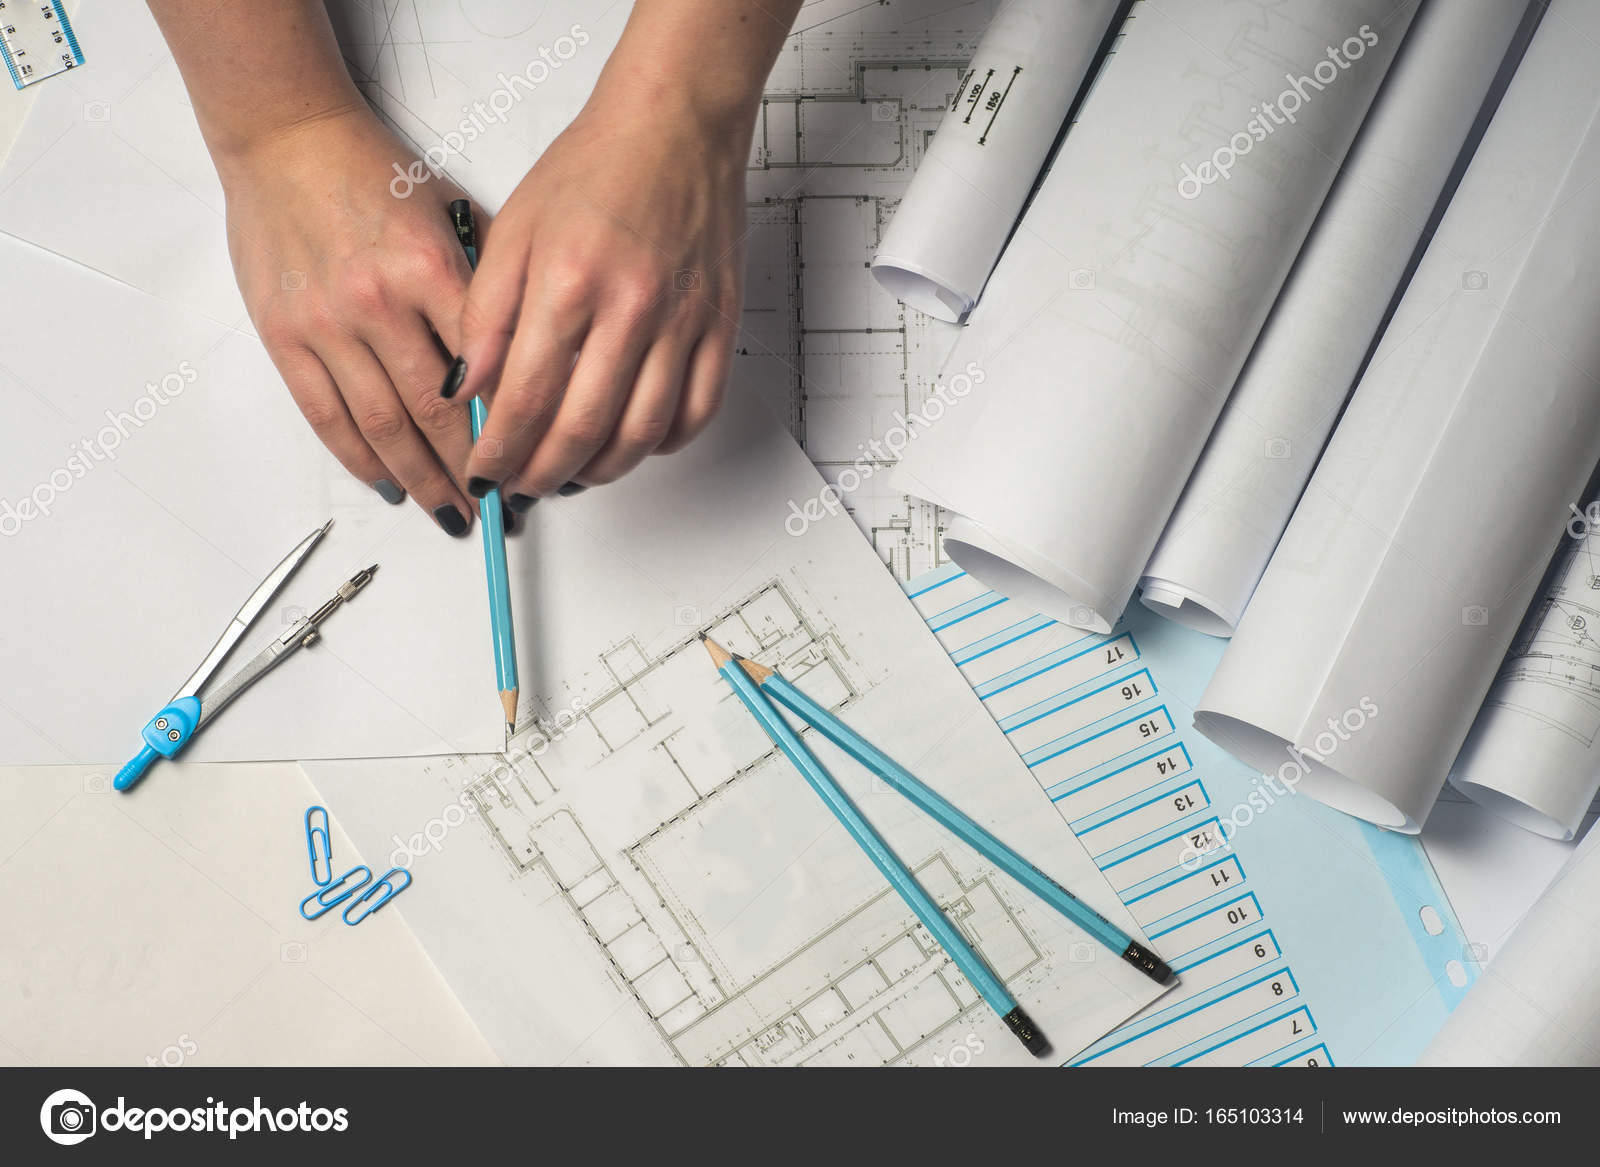 Architect working on blueprint stock photo vtmila 165103314 architects workplace architectural project blueprints ruler and divider compass construction concept engineering tools top view photo by vtmila malvernweather Images